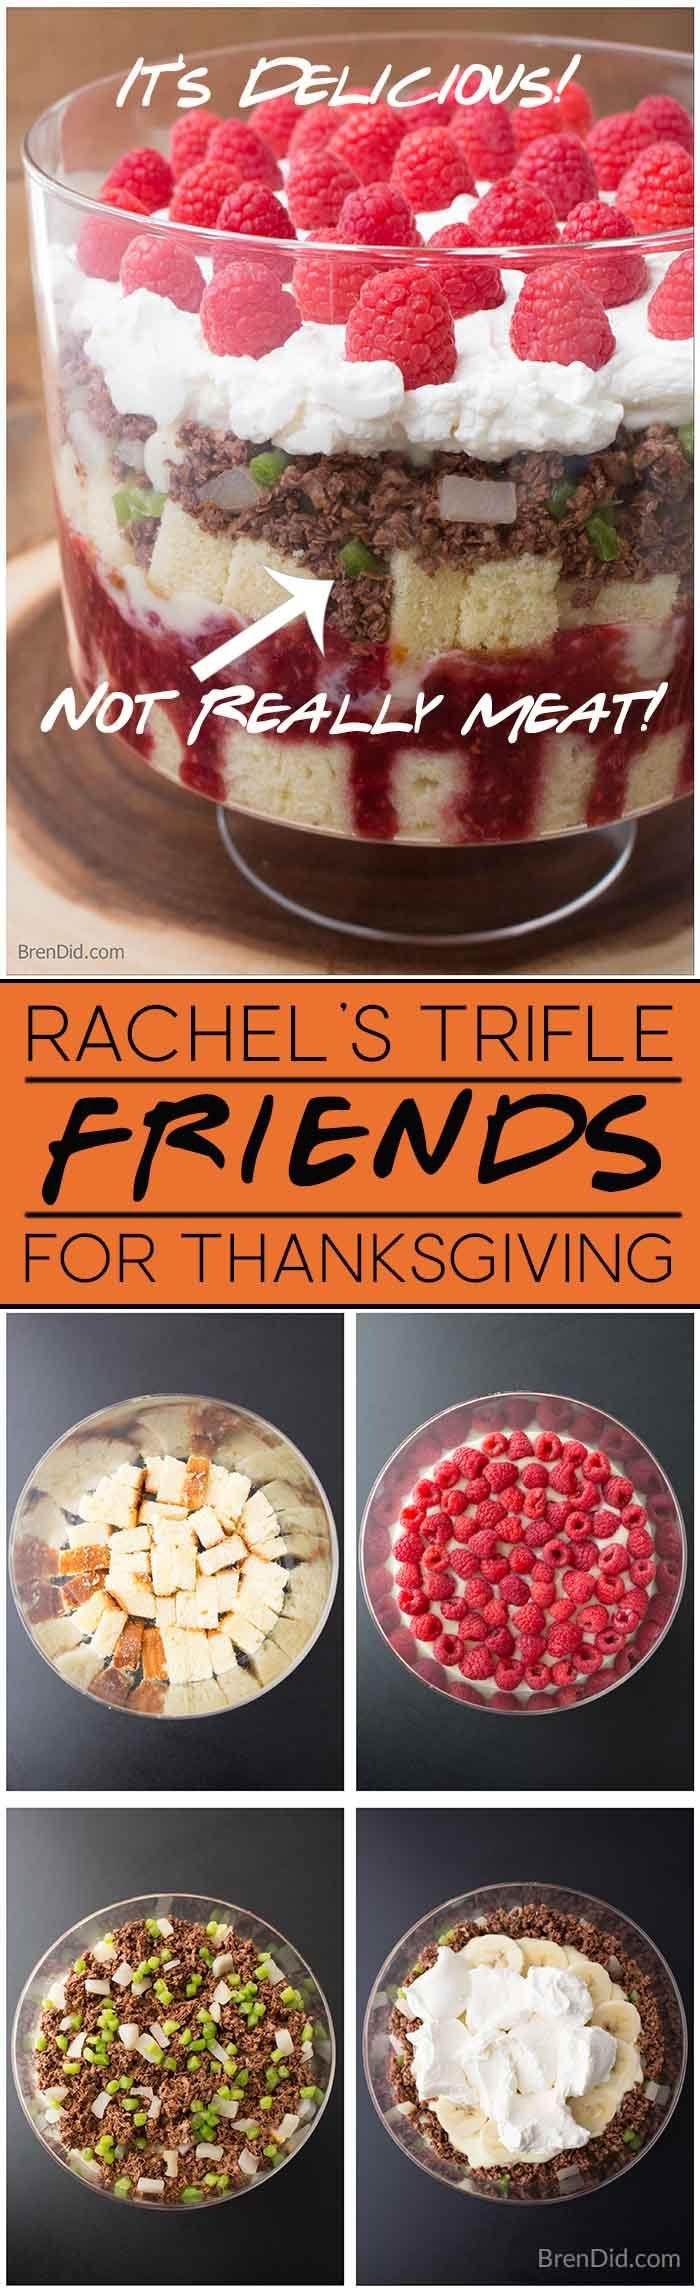 """Make the iconic FriendsThanksgiving trifle with a fake """"beef"""" layer made from coconut and chocolate. This tasty dessert is perfect for Thanksgiving and Friendsgiving! I'll be there for you  #friends #RachelsTrifle #Thaksgiving #friendsgiving via @brendidblog"""